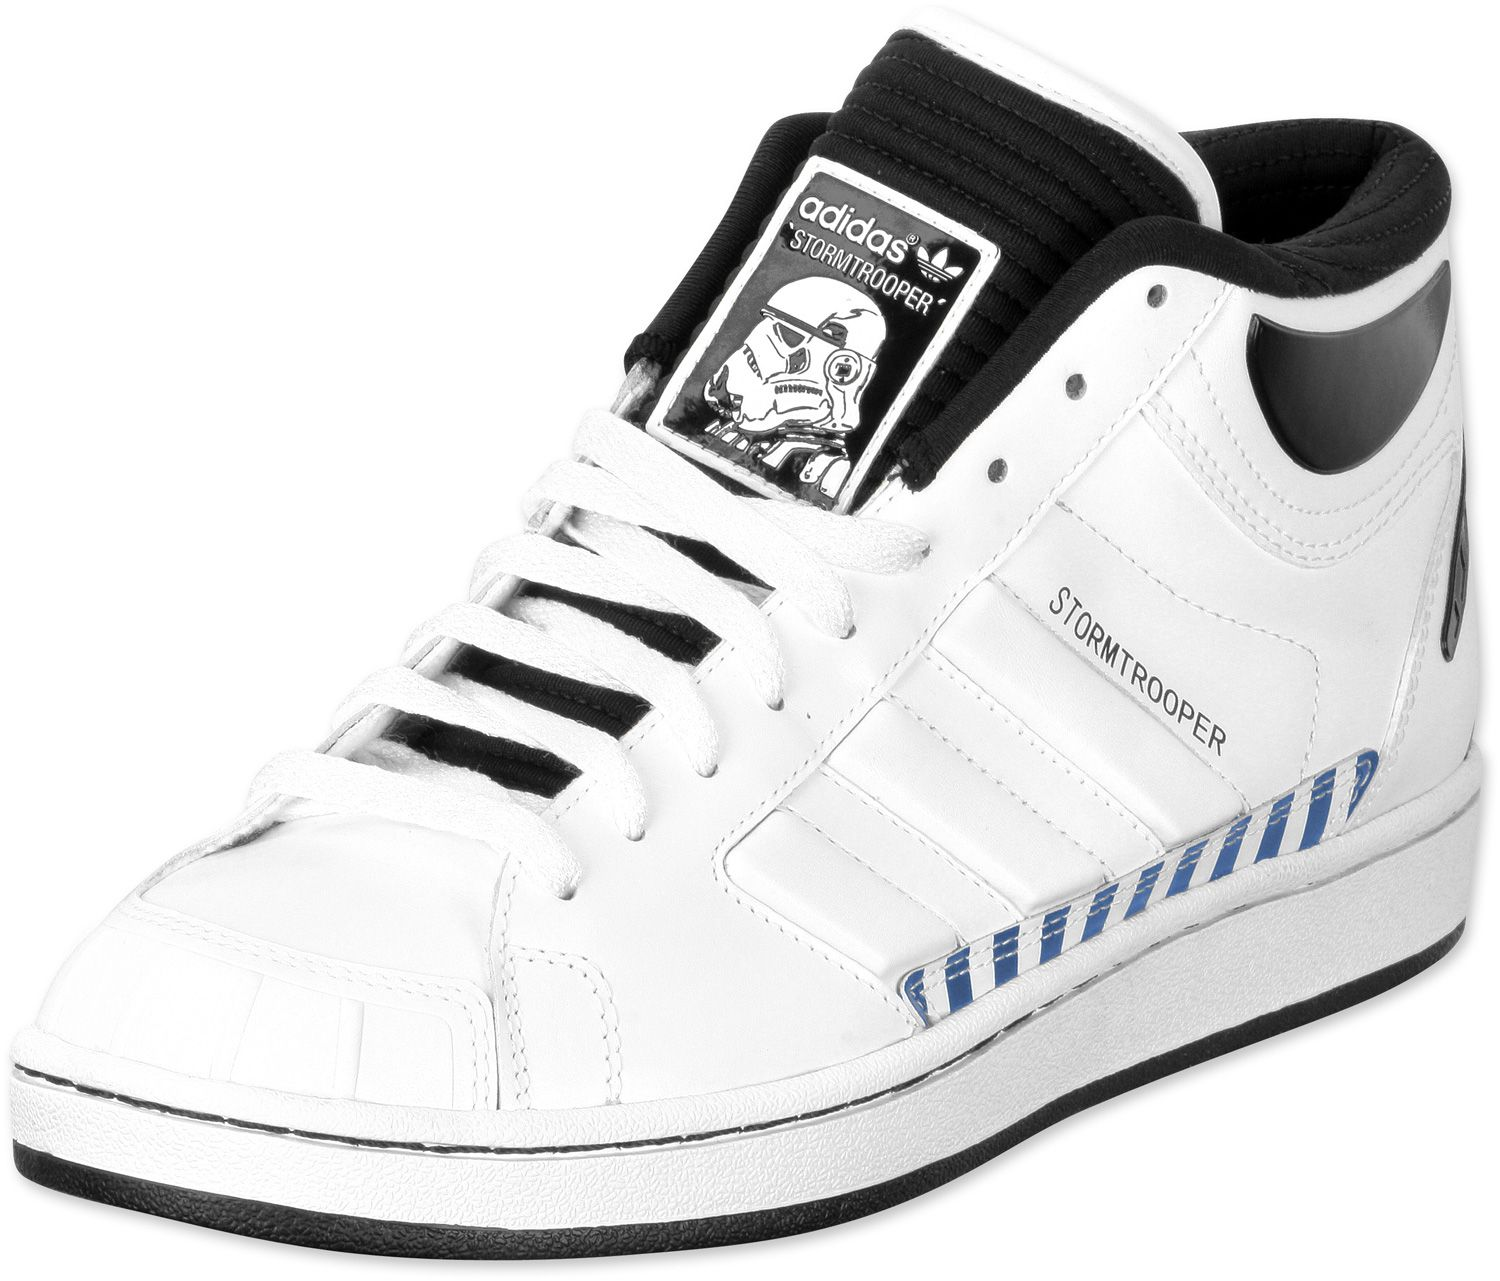 online store bd191 56bc8 Star Wars Adidas Stormtrooper Shoes